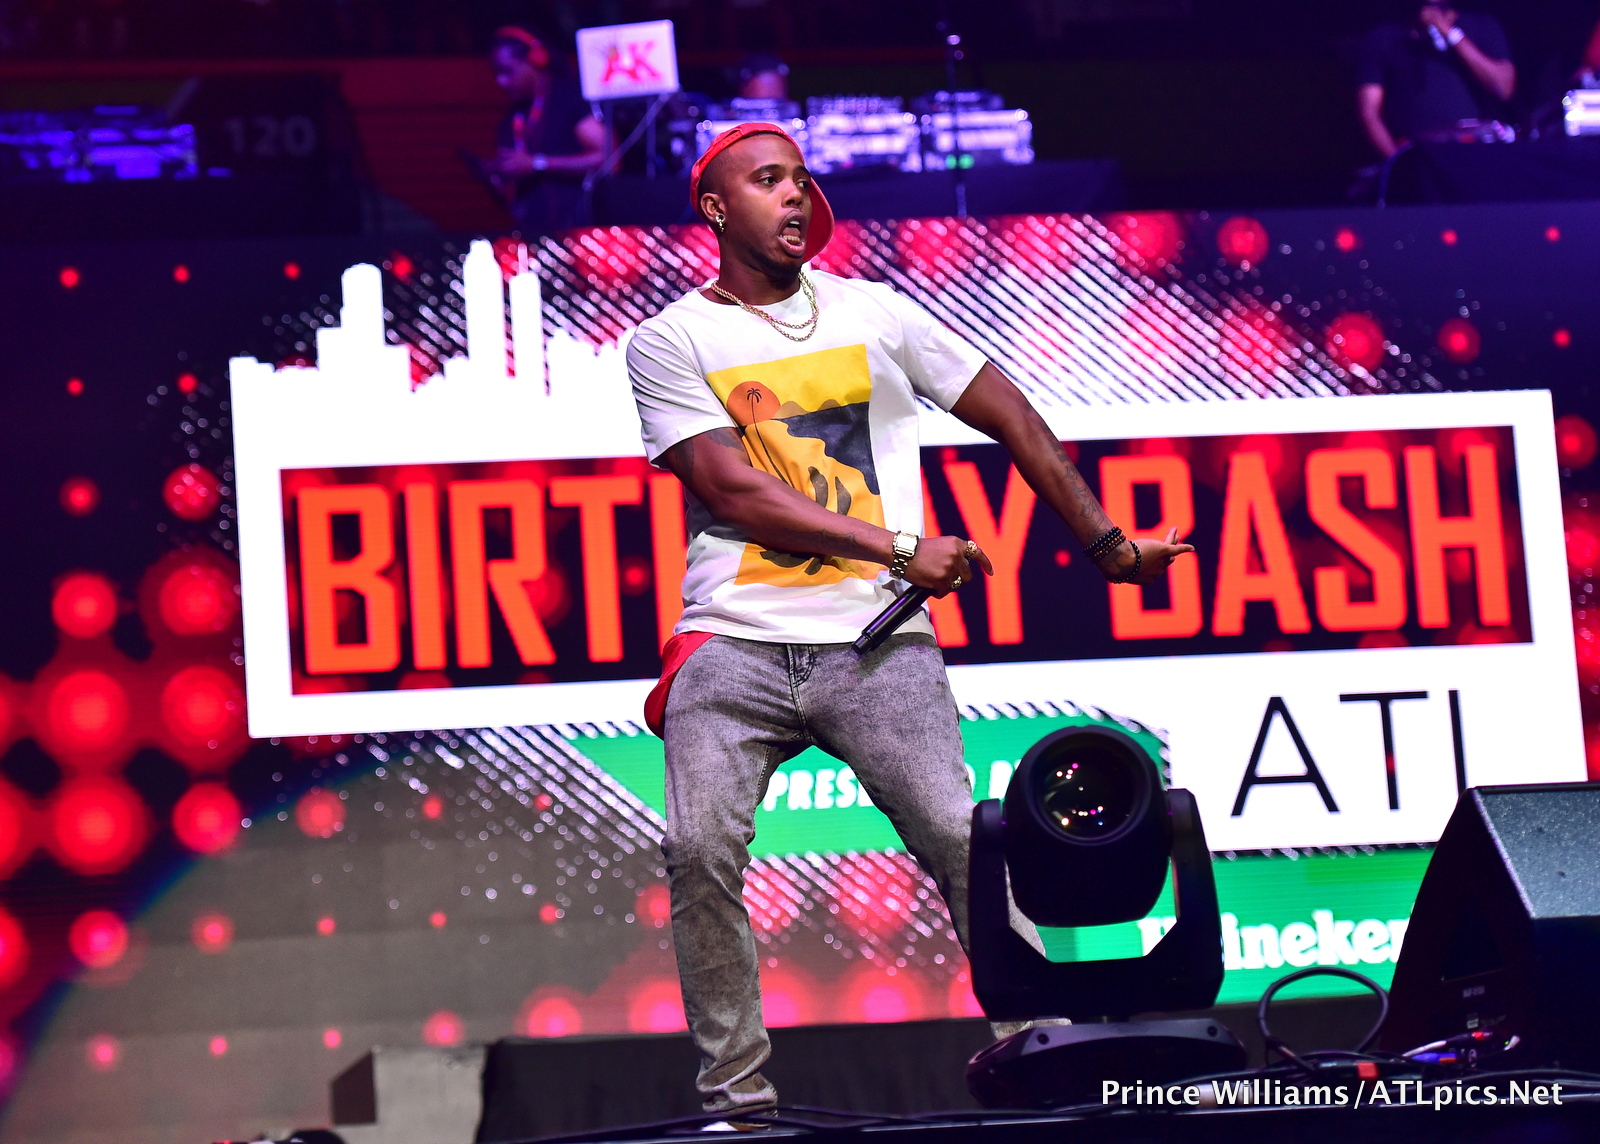 B.O.B. at #BirthdayBashATL2017